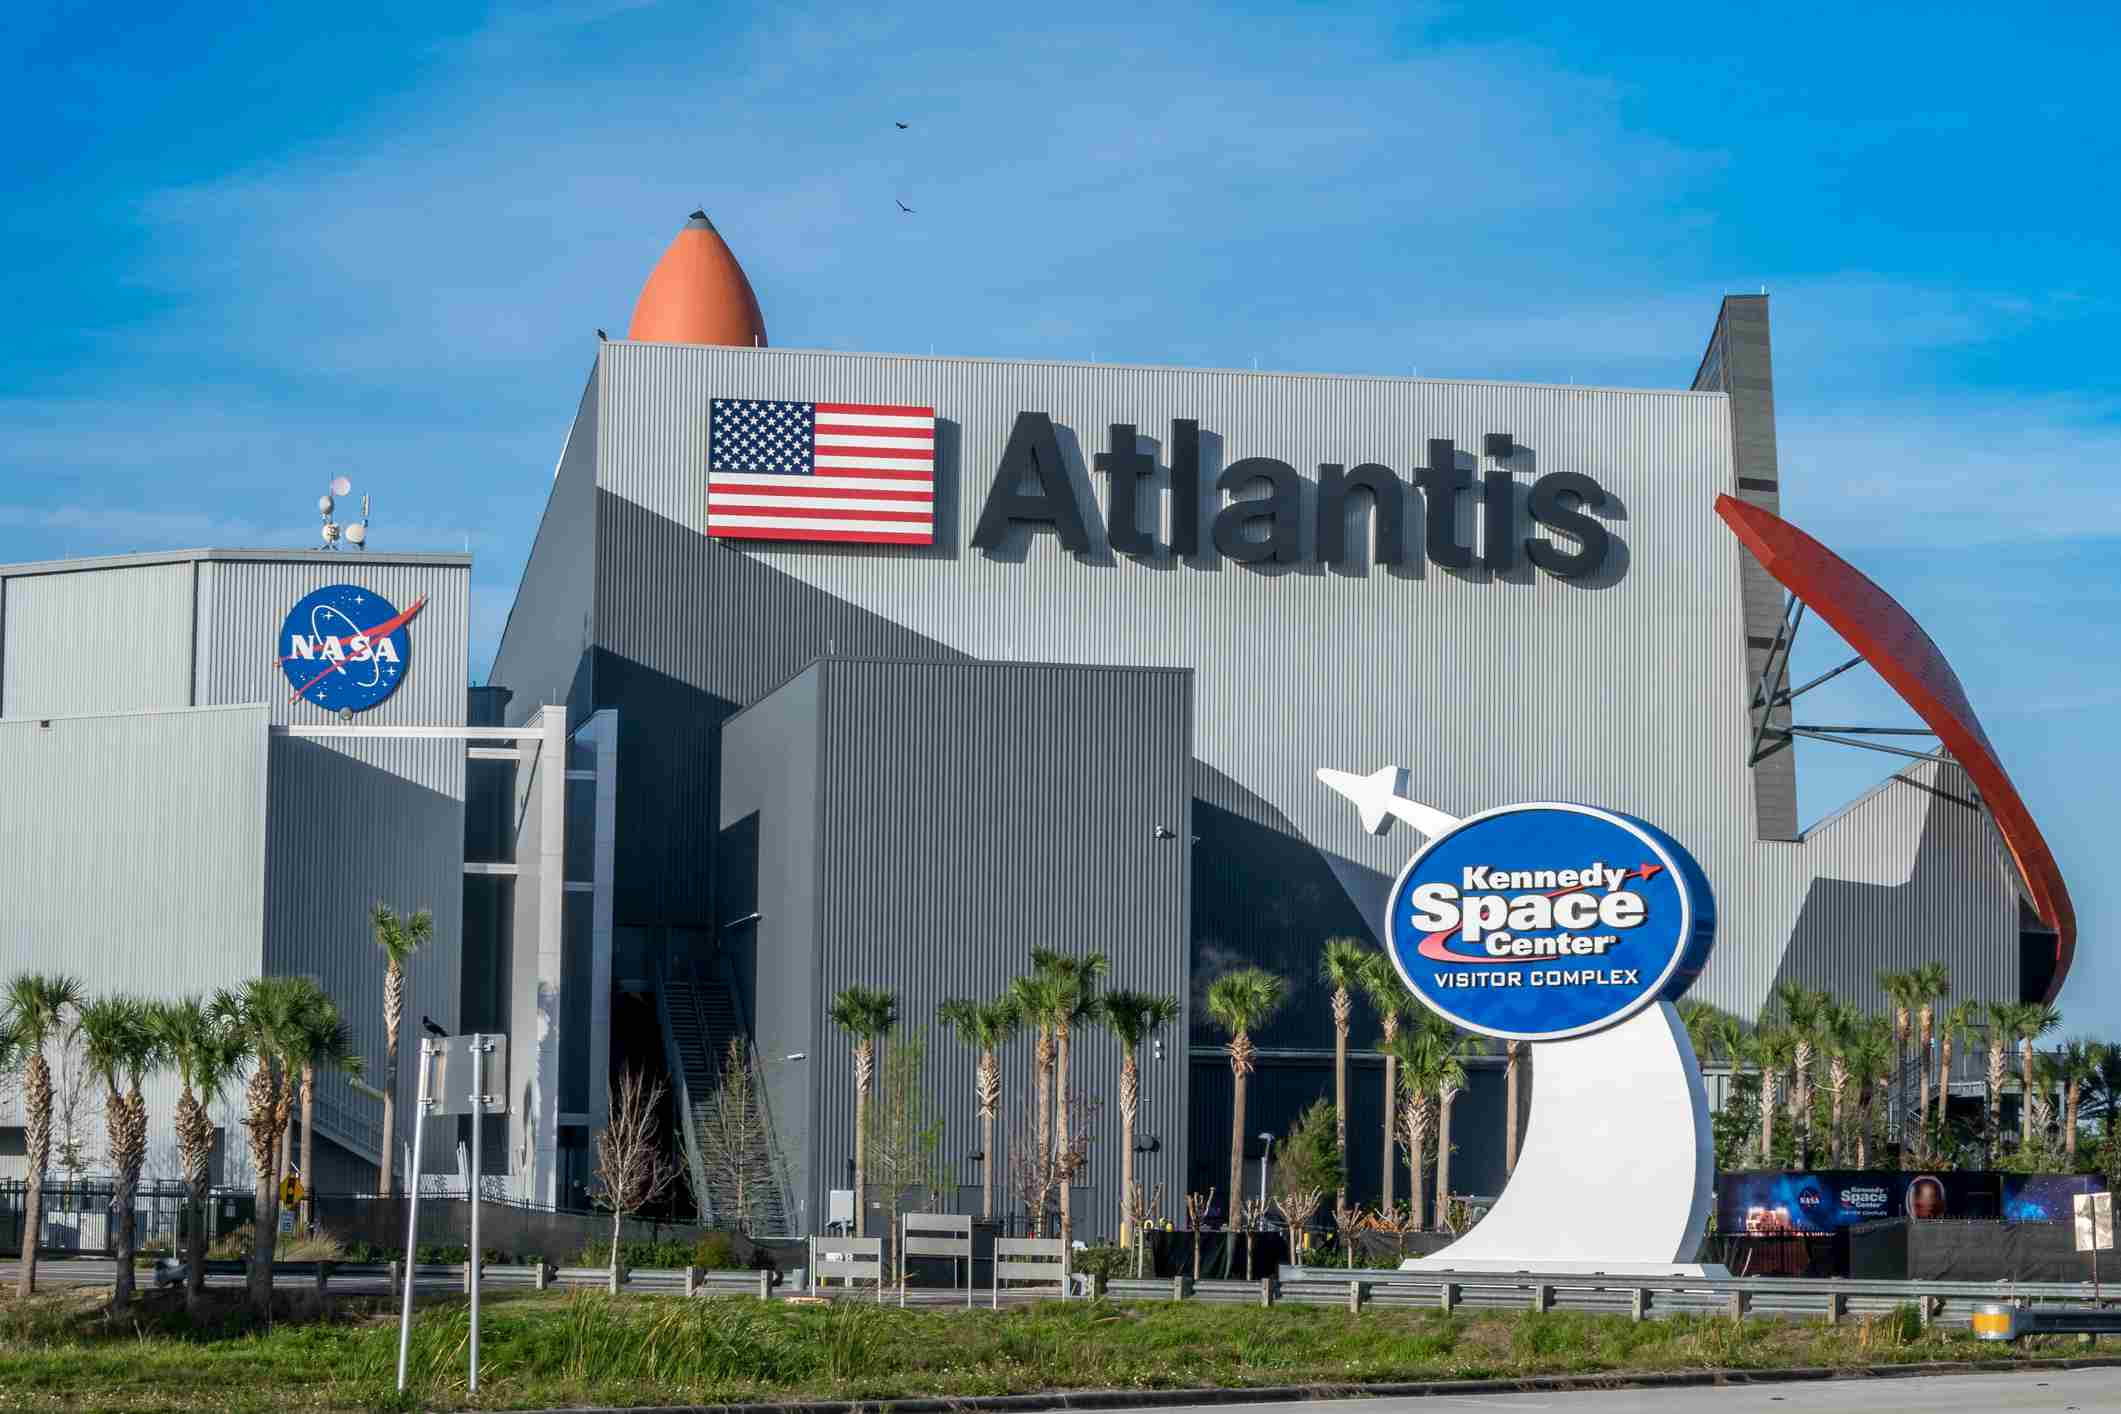 Kennedy Space Center Visitors Complex offers tours, exhibits, and historical displays.